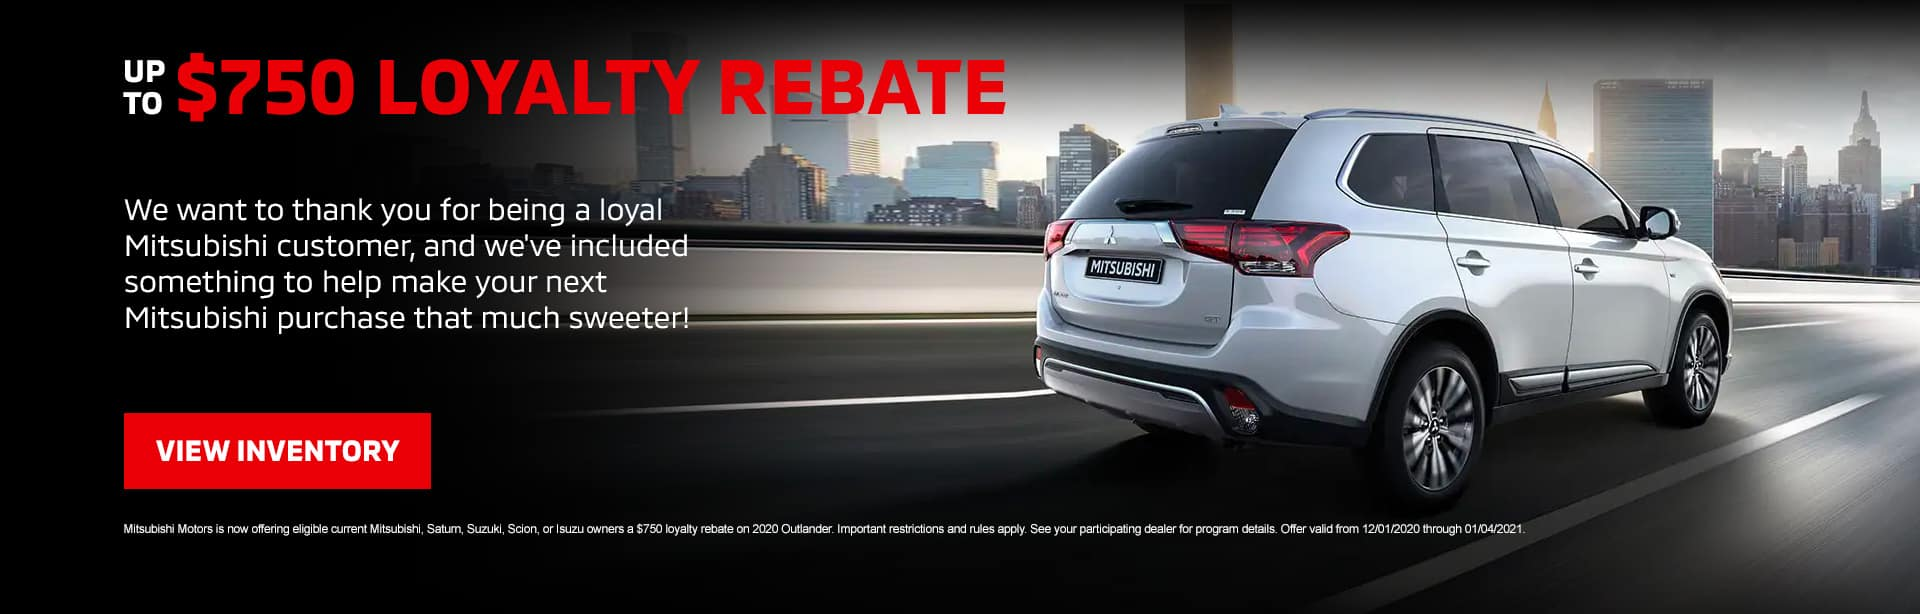 Up to $750 Loyalty Rebate: We want to thank you for being a loyal Mitsubishi customer, and we've included something to help make your next Mitsubishi purchase that much sweeter!